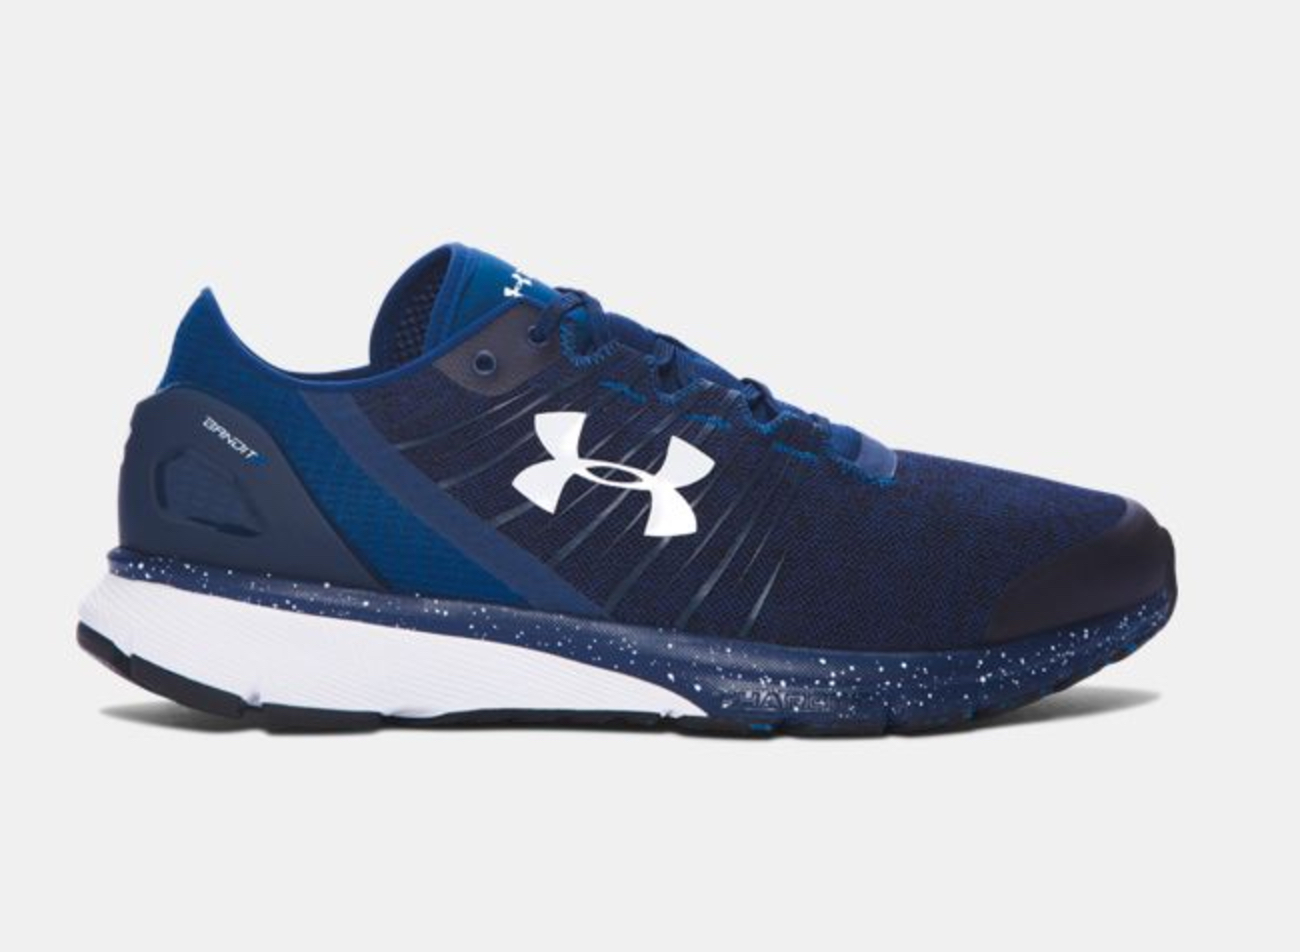 Pautas decidir Giro de vuelta  New Under Armour Charged Bandit 2 Colorways Have Landed - WearTesters